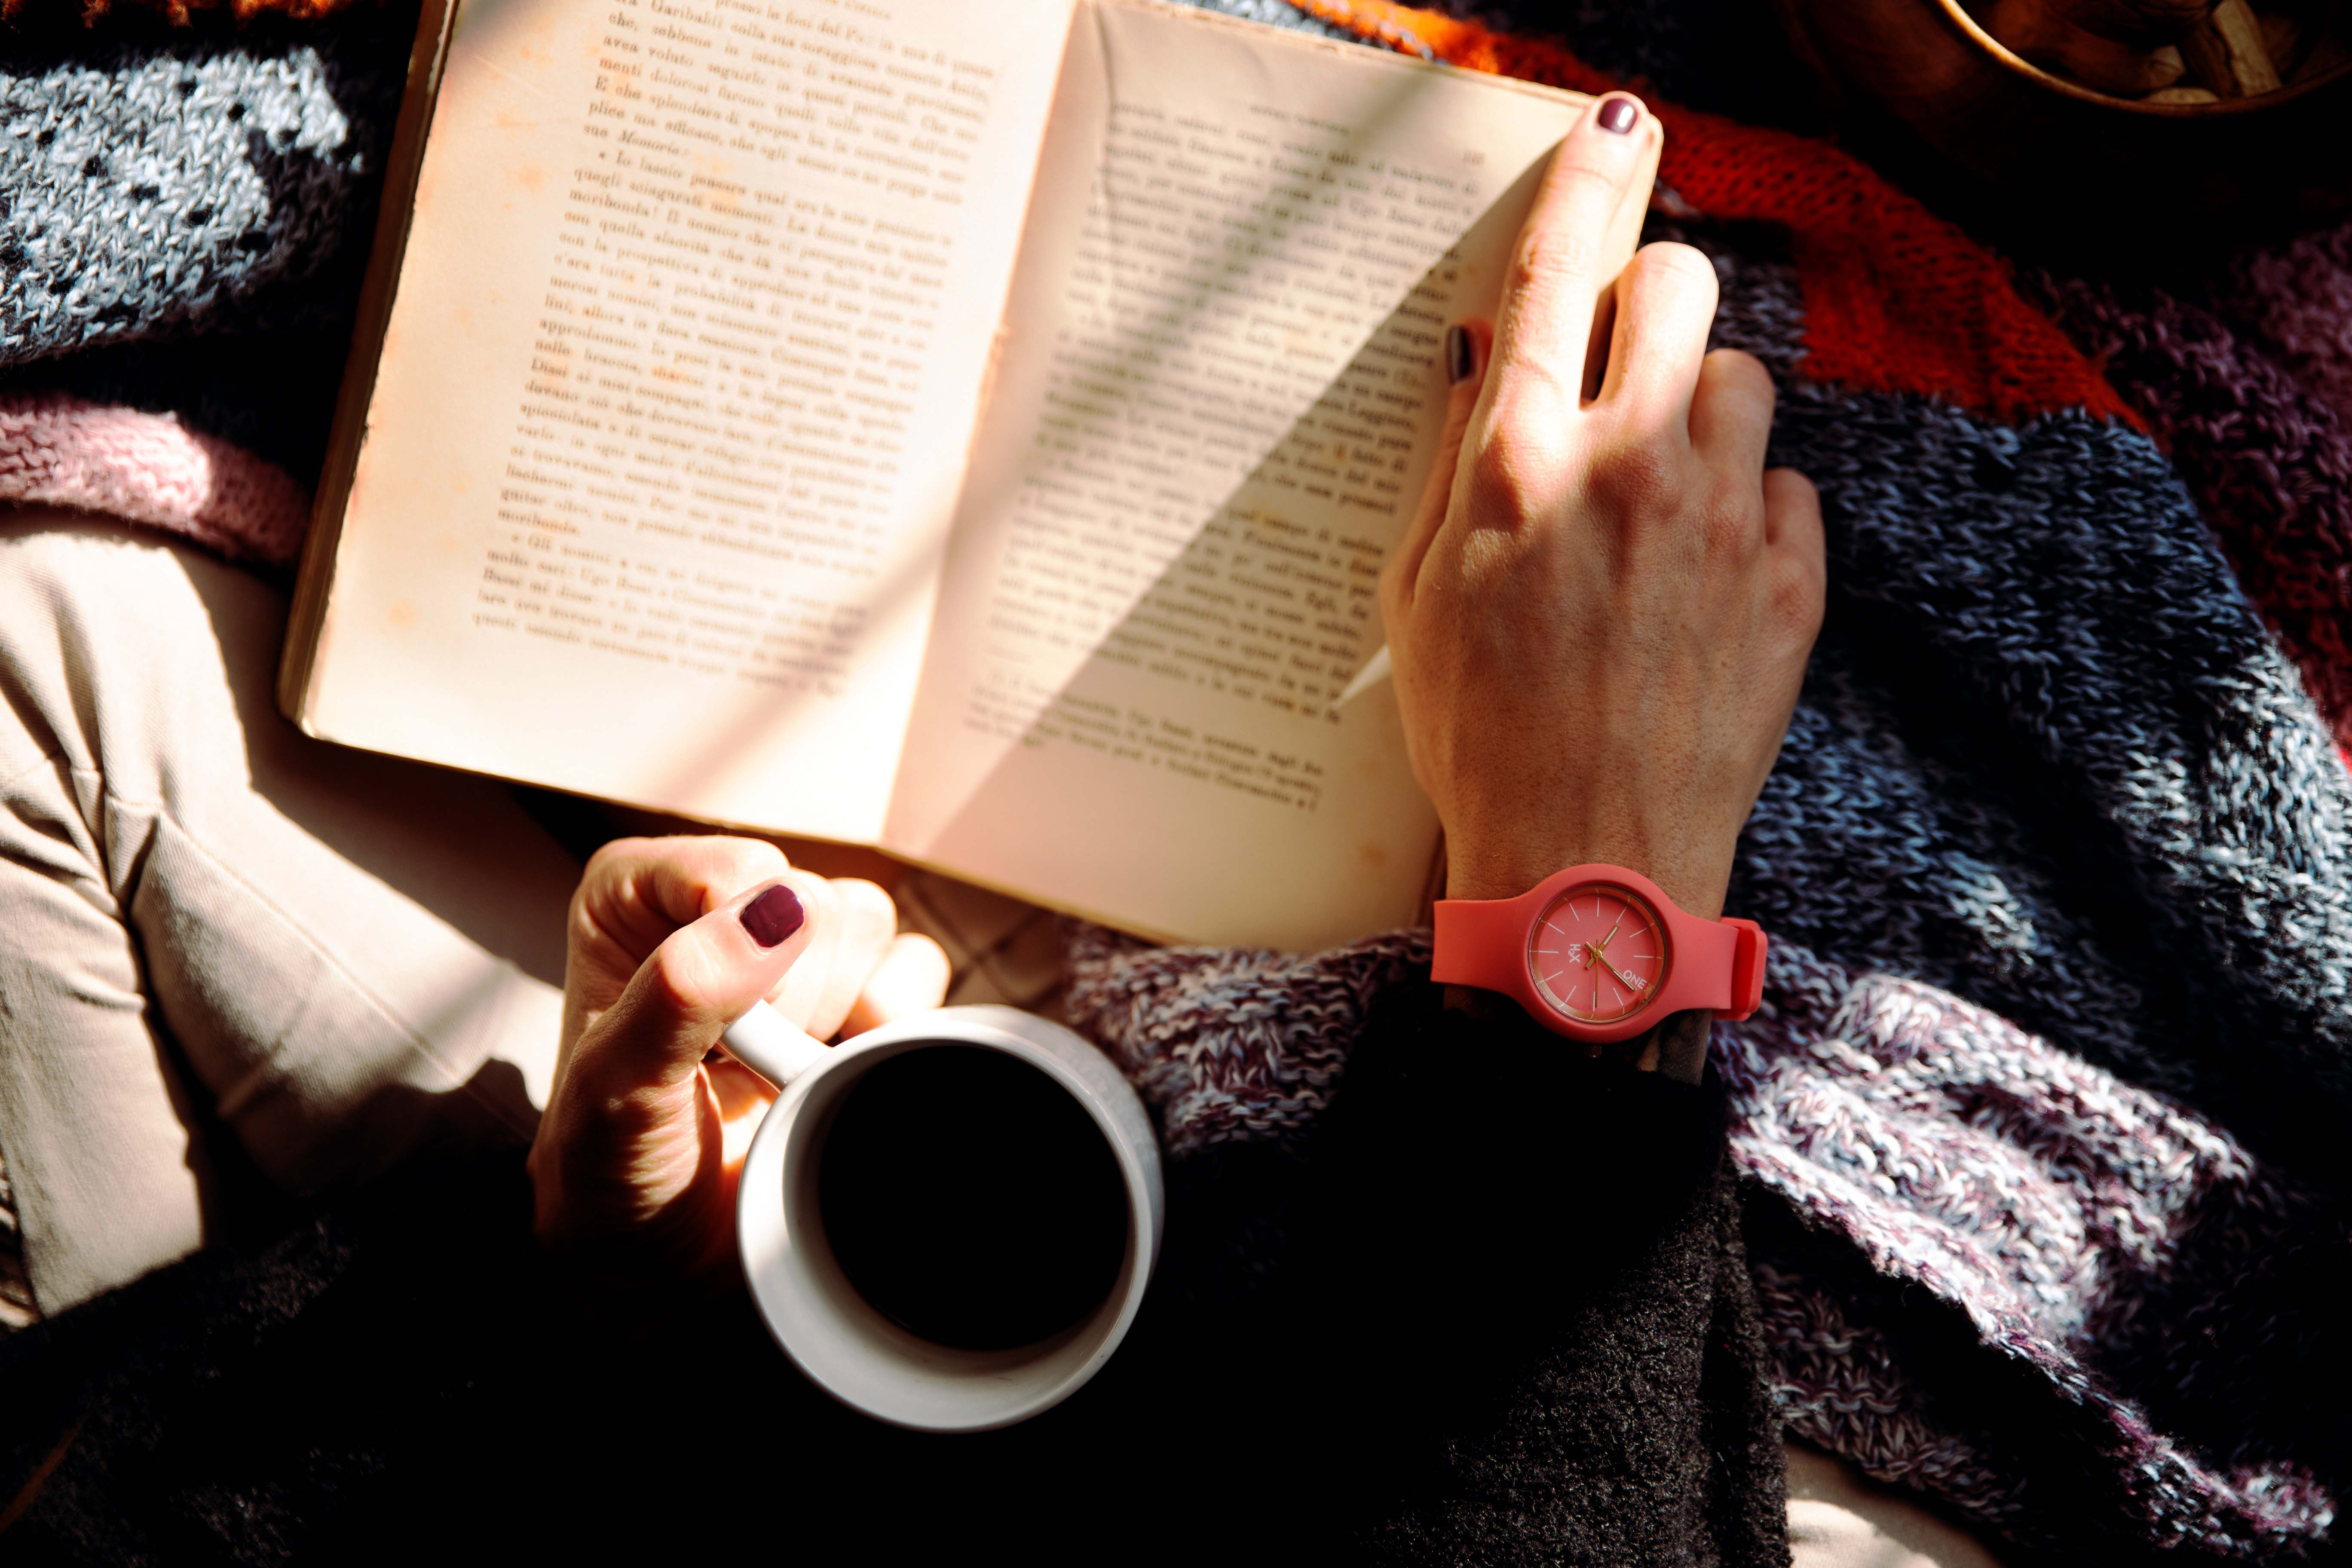 a shot from above of a person sitting on a blanket, one hand about the turn the page of a book, the other hand holding a mug.